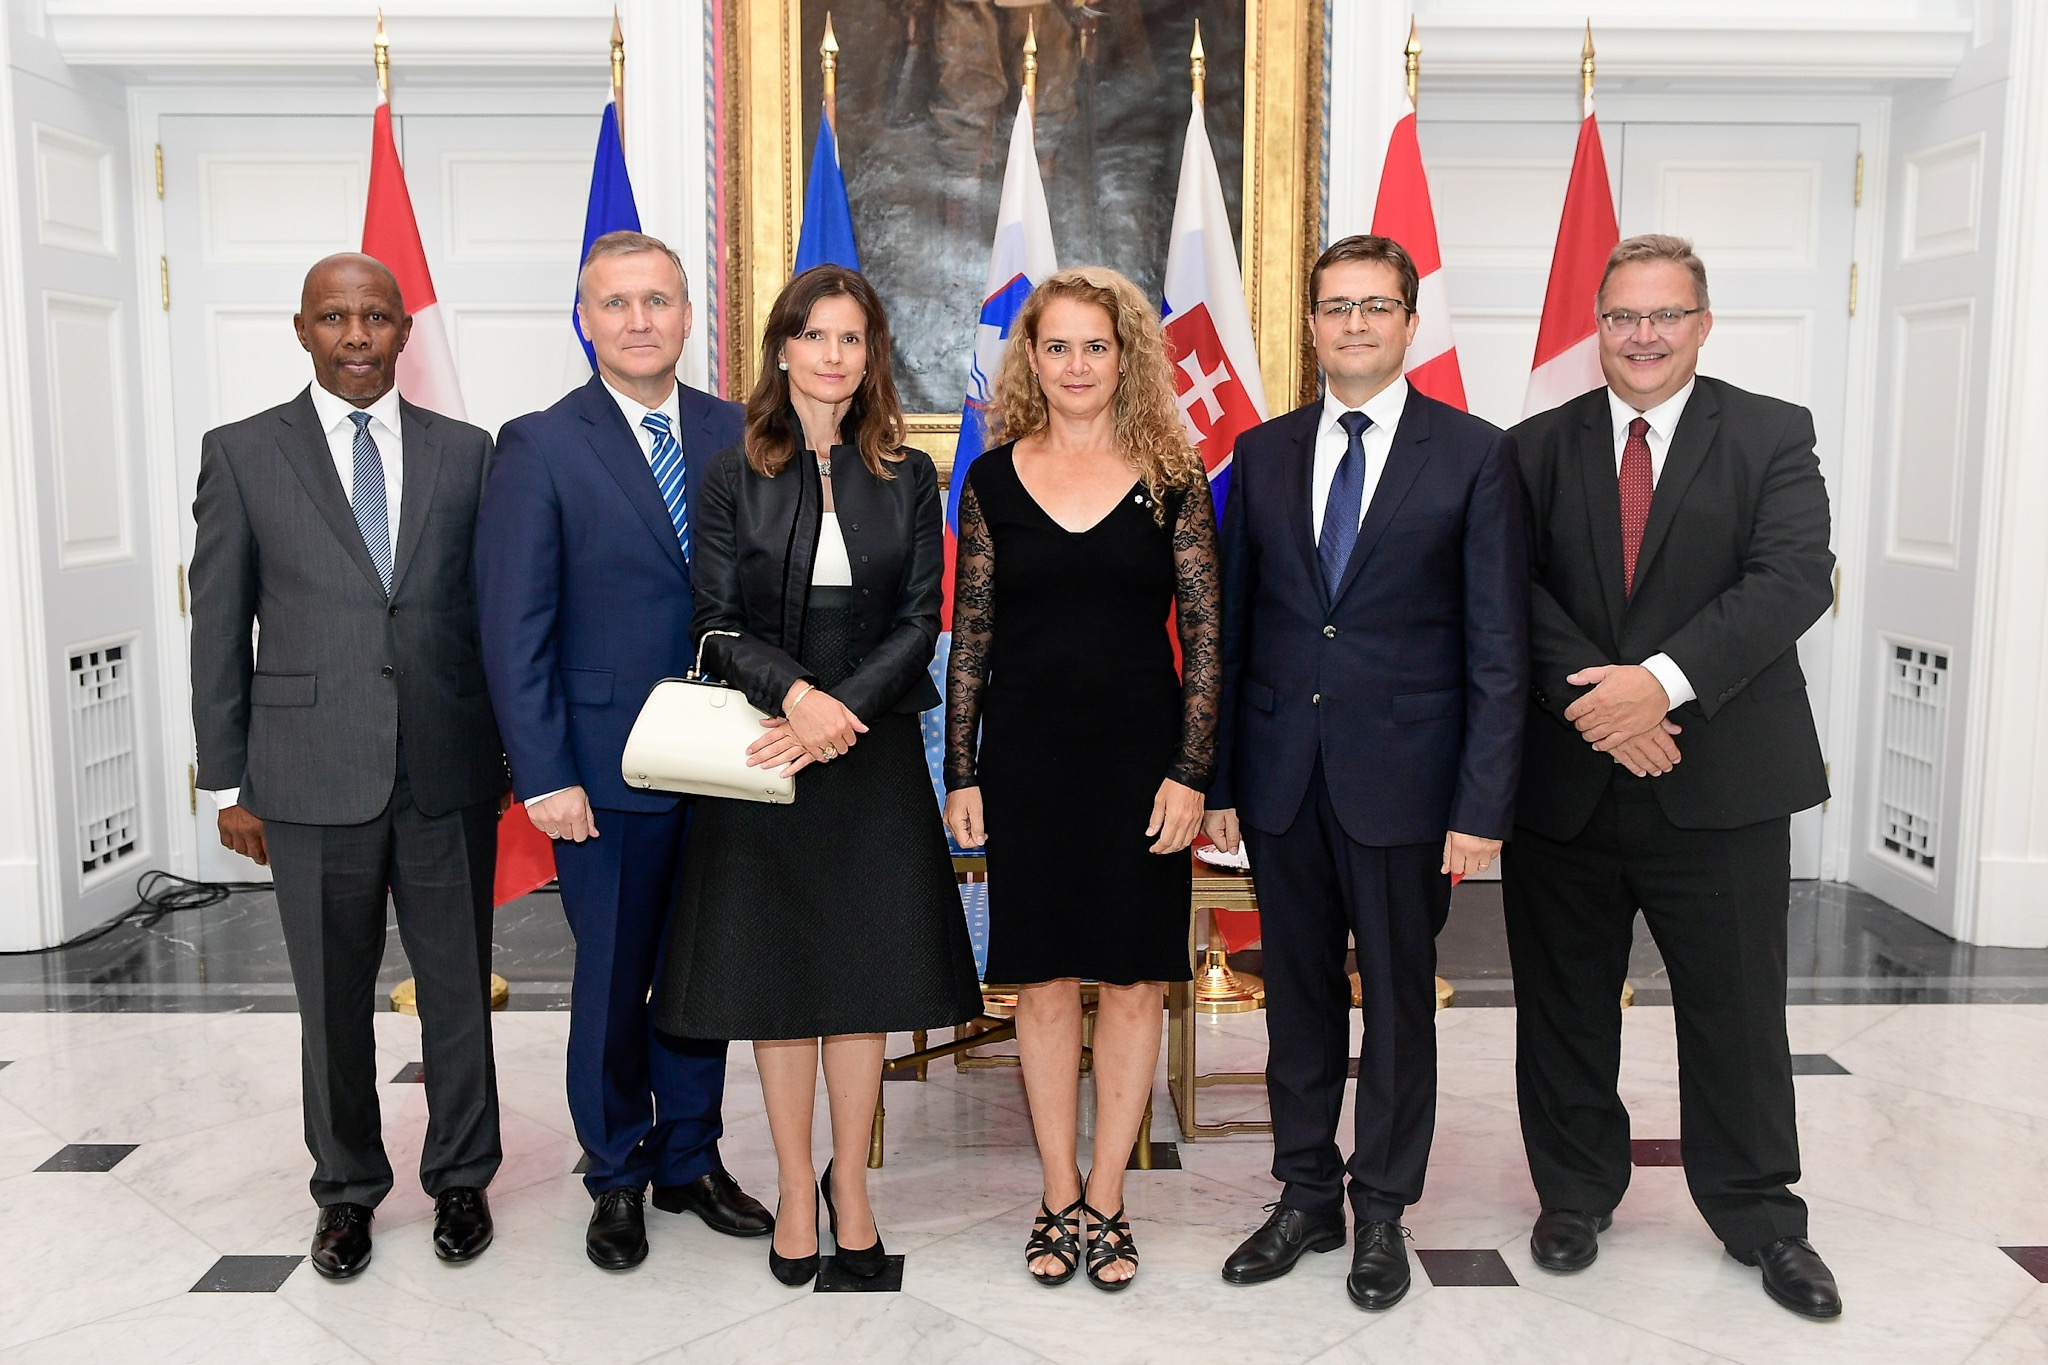 On September 5, 2018, the Governor General received the letters of credence of five new heads of mission. Letters of credence are the official documents by which new heads of diplomatic missions are presented by their head of State as their official representative.